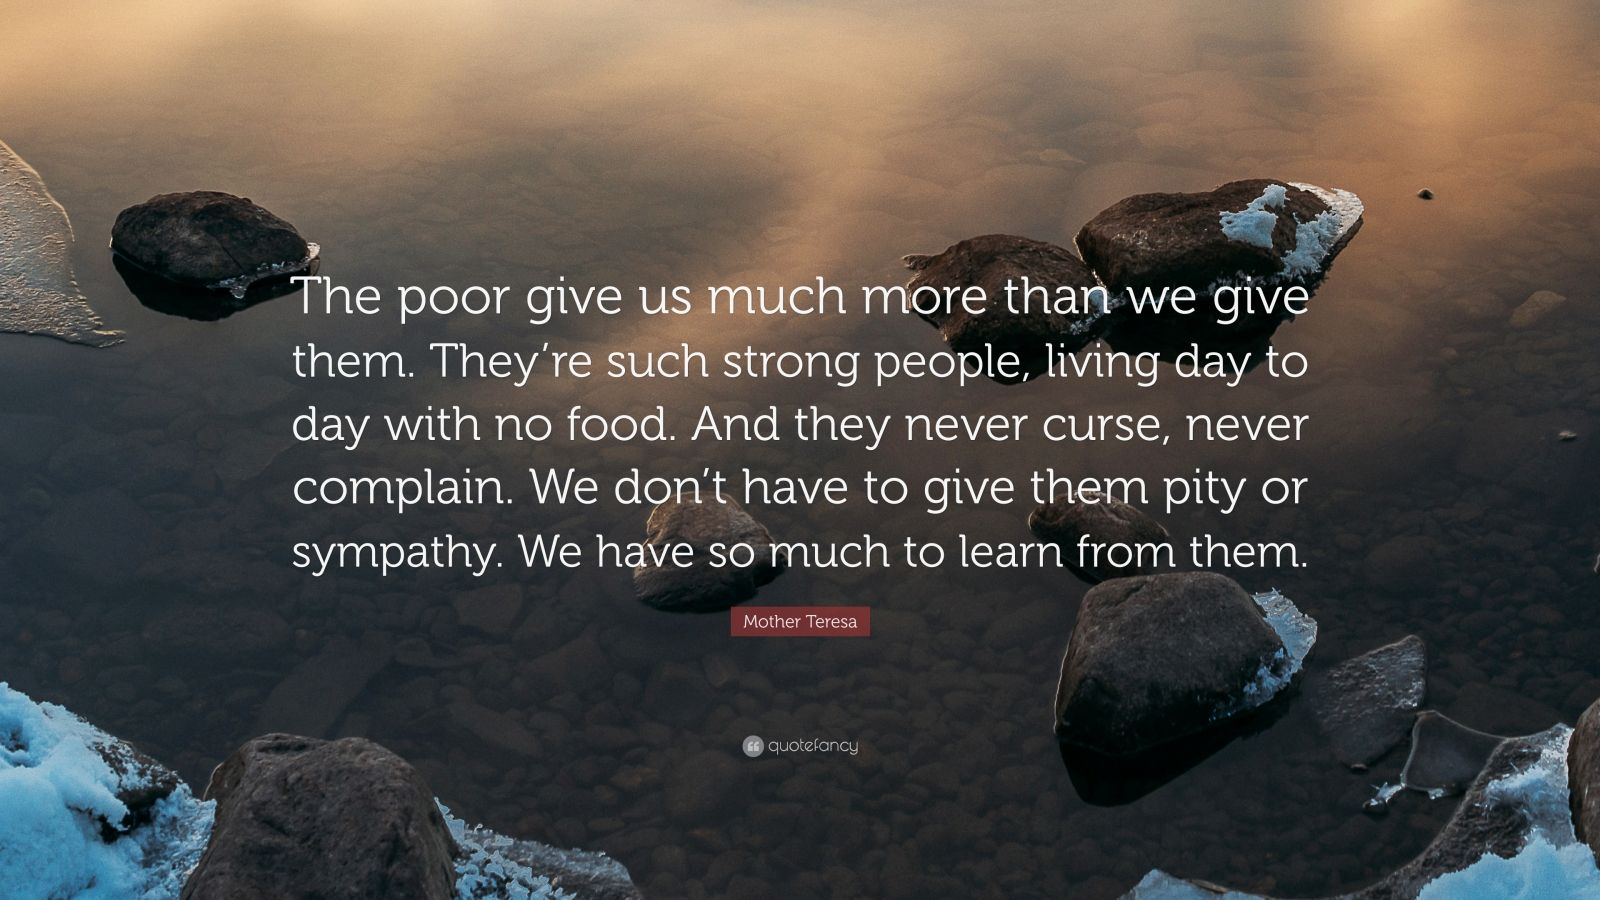 """Mother Teresa Quote: """"The poor give us much more than we give them. They're such strong people, living day to day with no food. And they never curse, never complain. We don't have to give them pity or sympathy. We have so much to learn from them."""""""